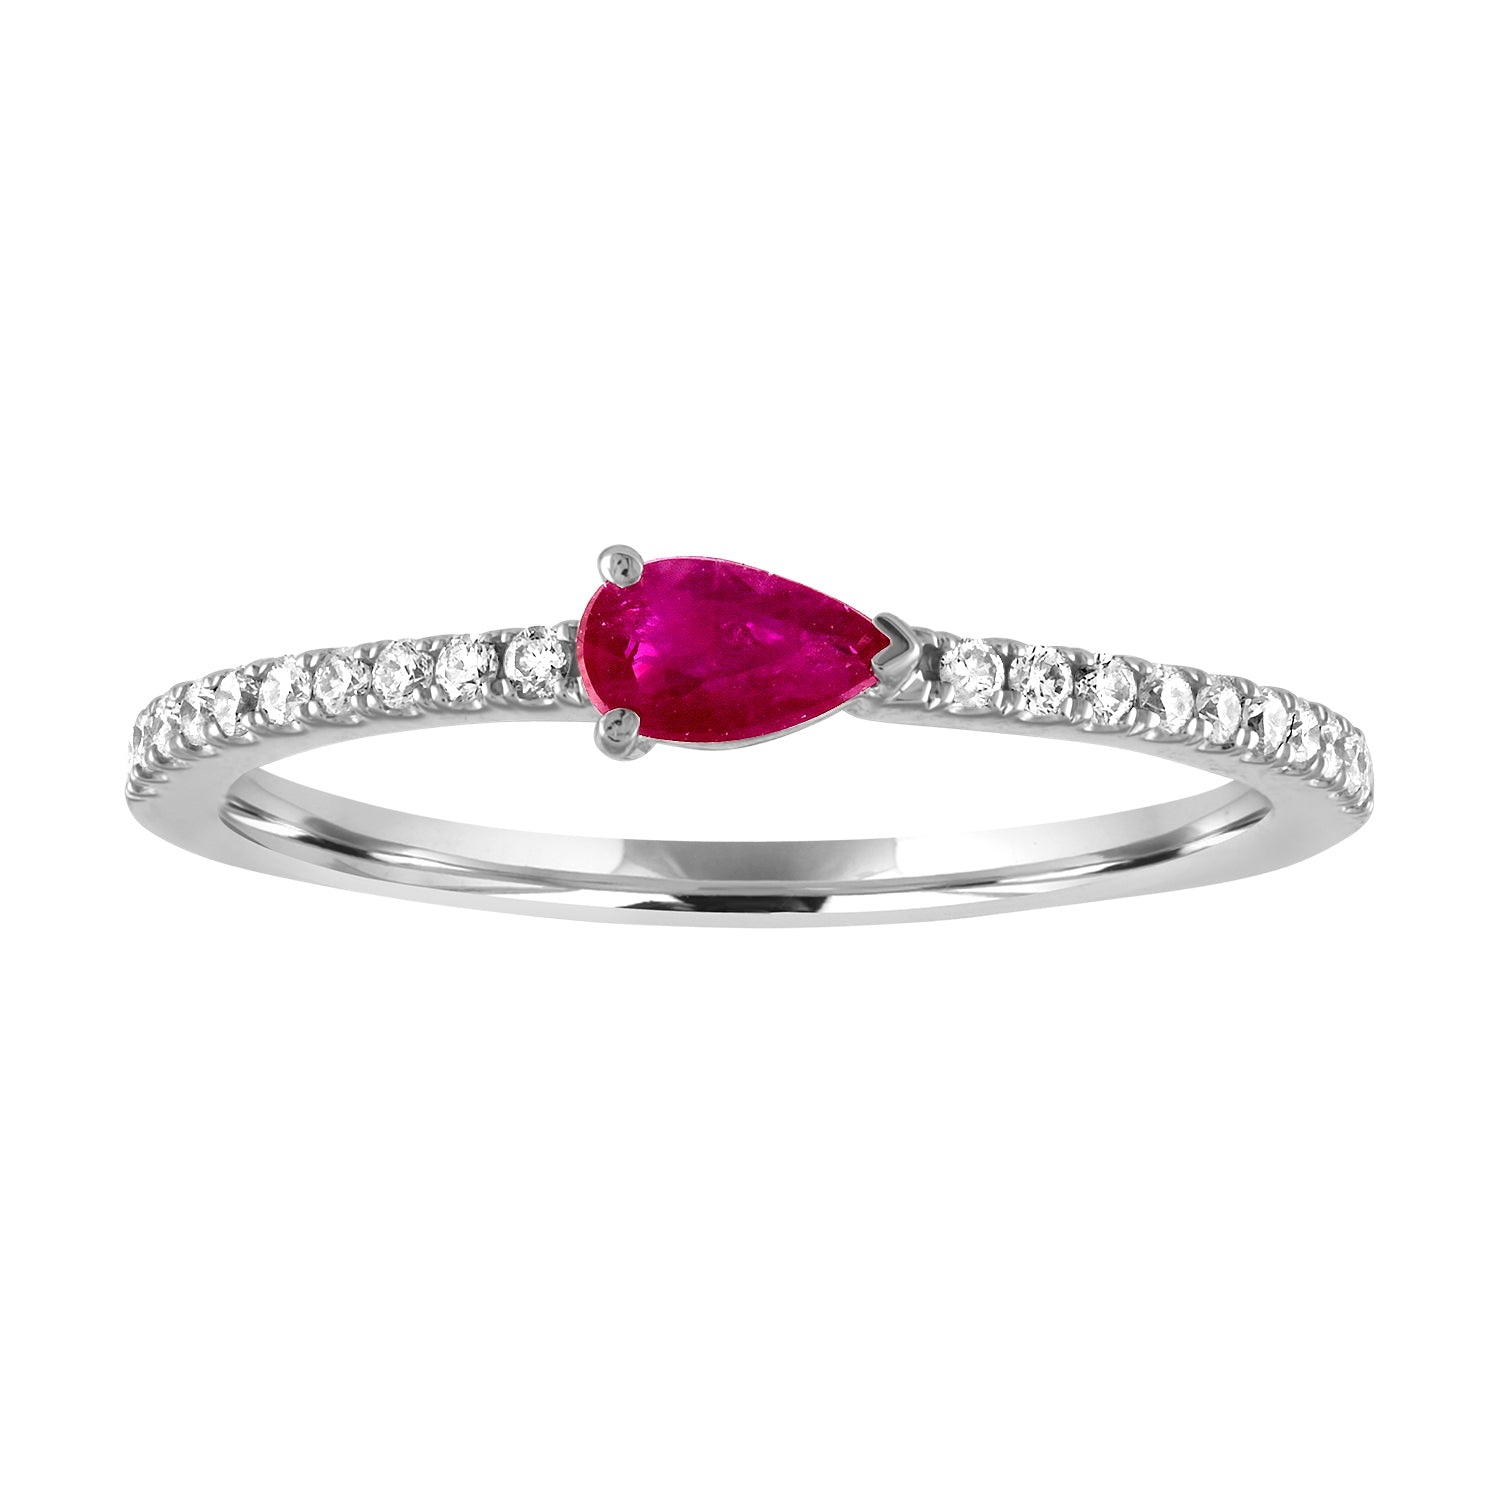 Layla ring with ruby pear